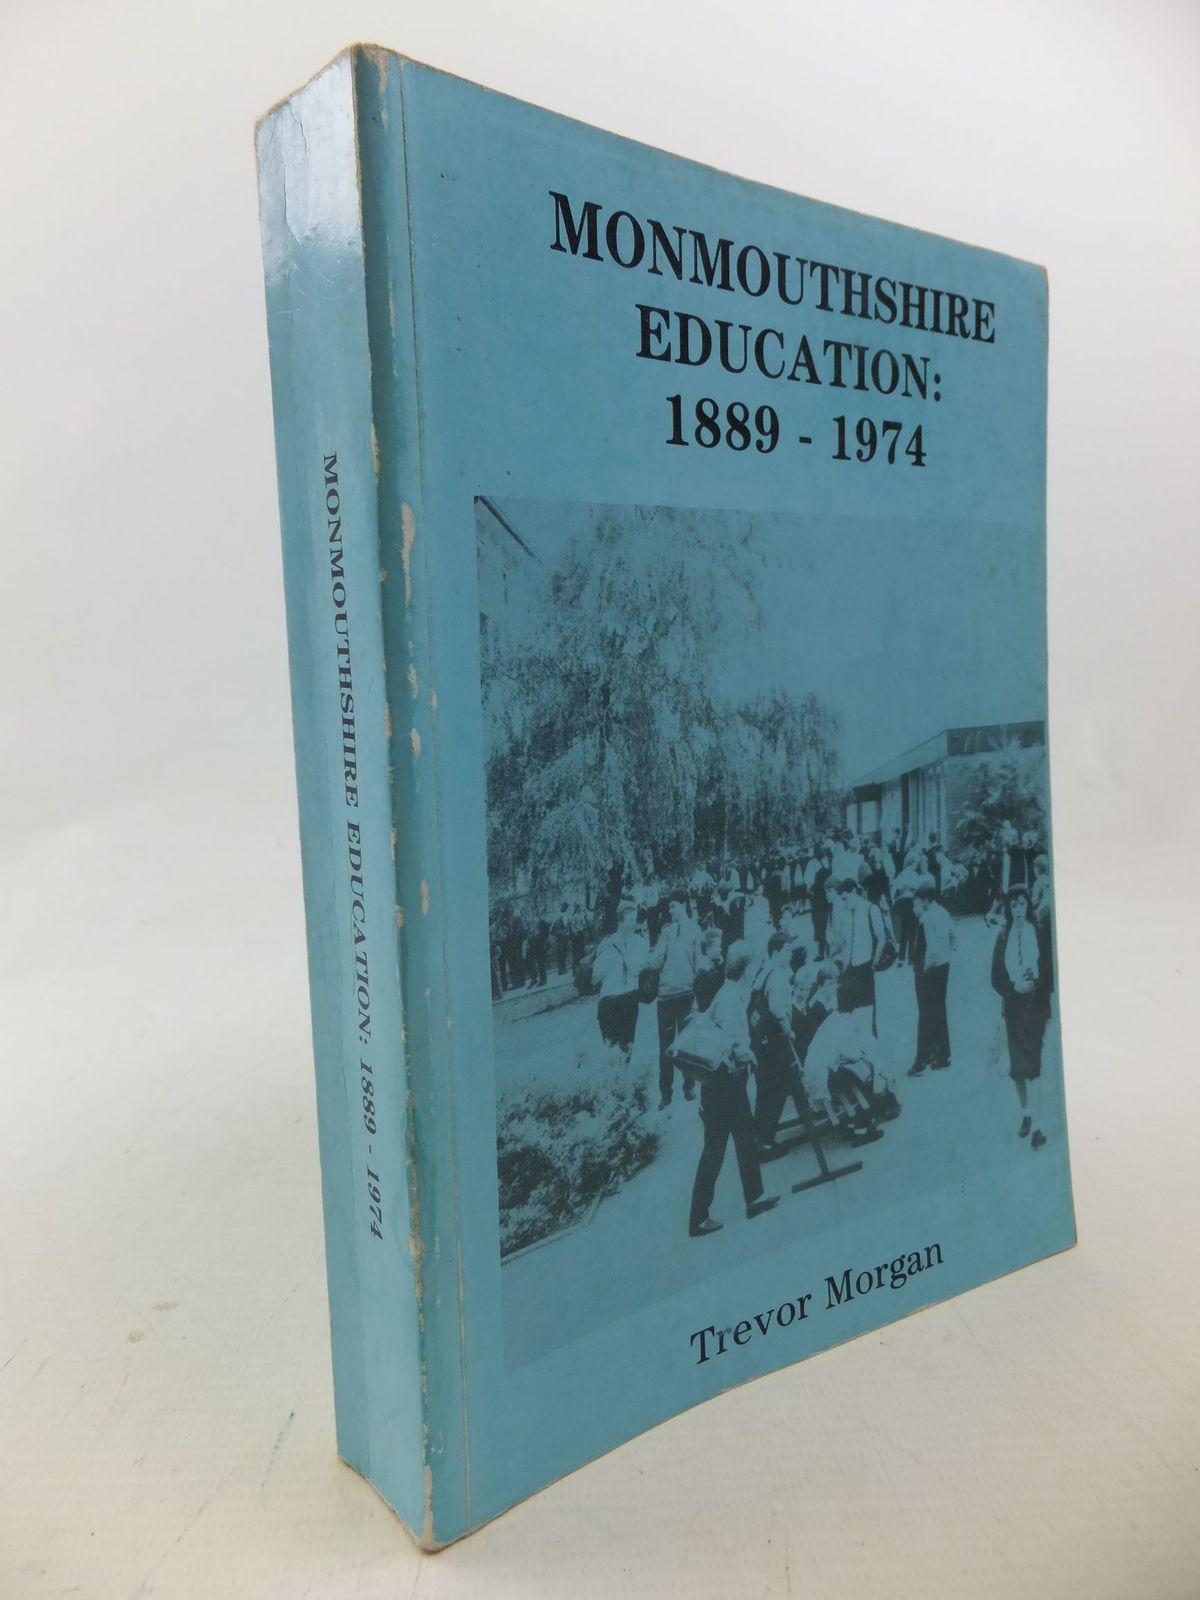 Photo of MONMOUTHSHIRE EDUCATION: 1889 - 1974 written by Morgan, Trevor published by Cwmbran Community Press Ltd. (STOCK CODE: 1710665)  for sale by Stella & Rose's Books